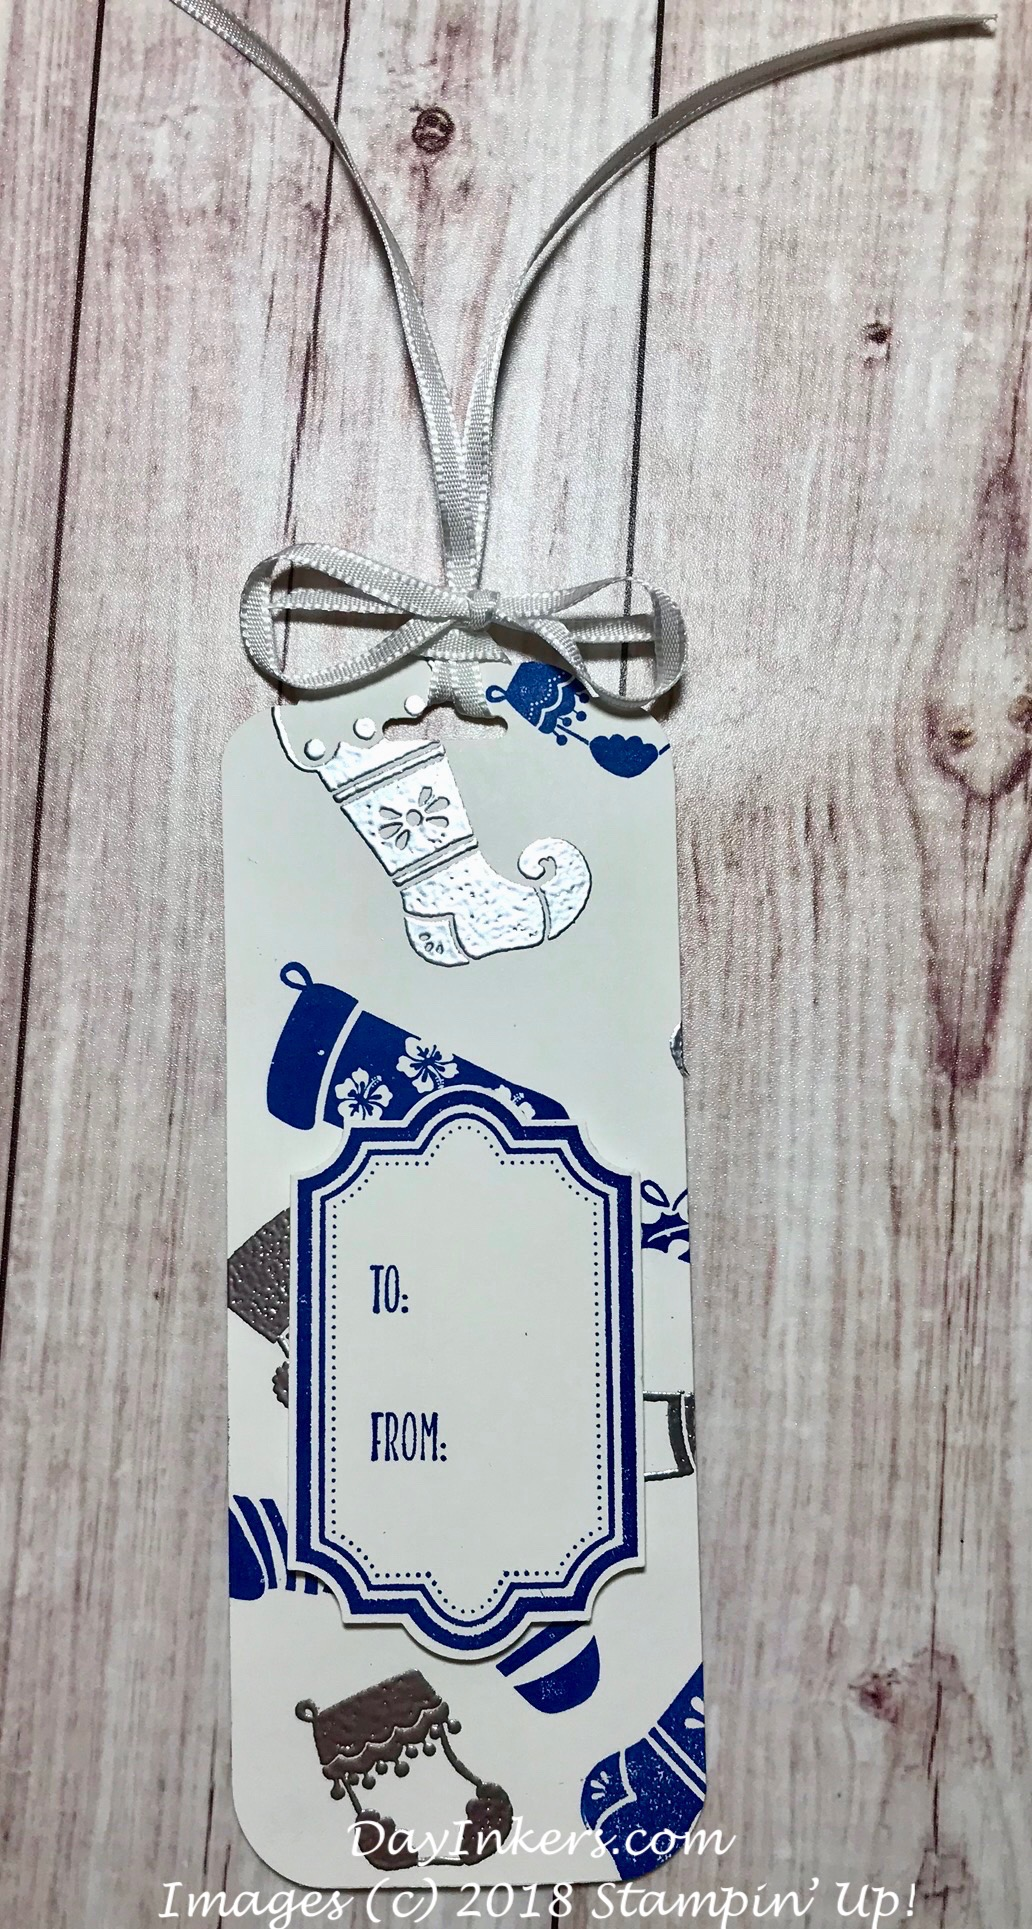 Stampin' Up! Hung with Care gift tag